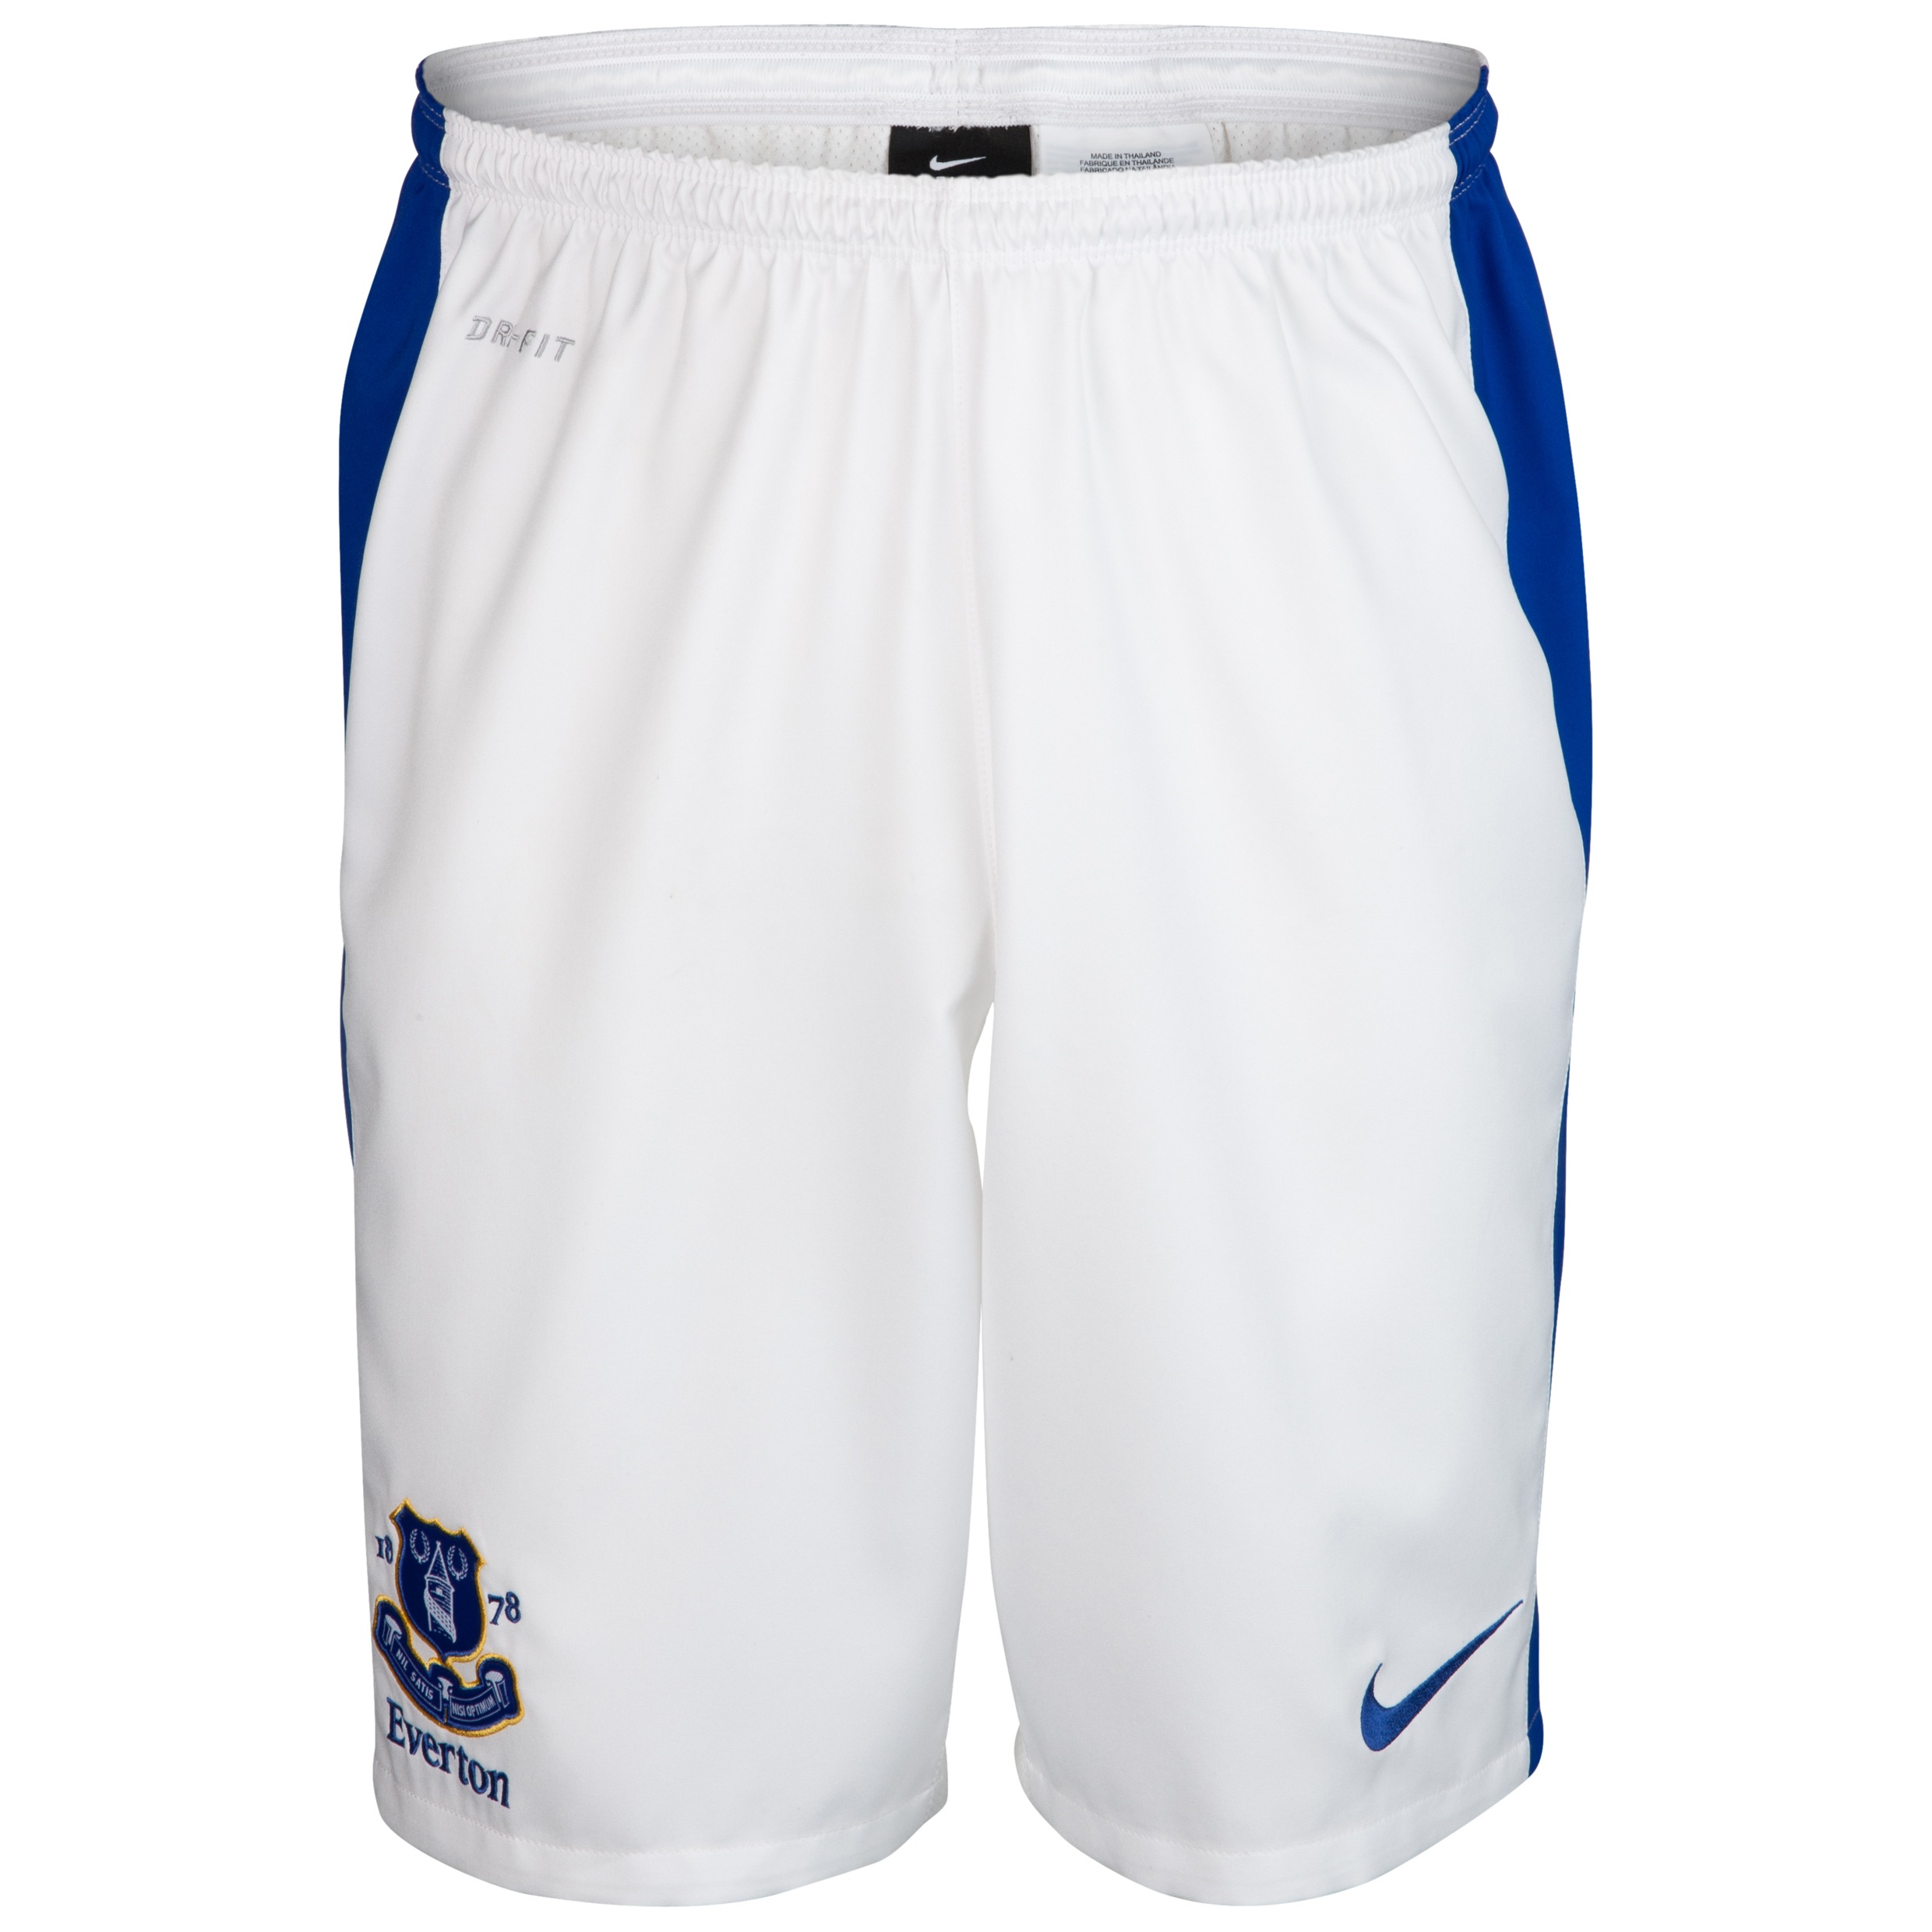 Everton Home Short 2012/13 - Junior